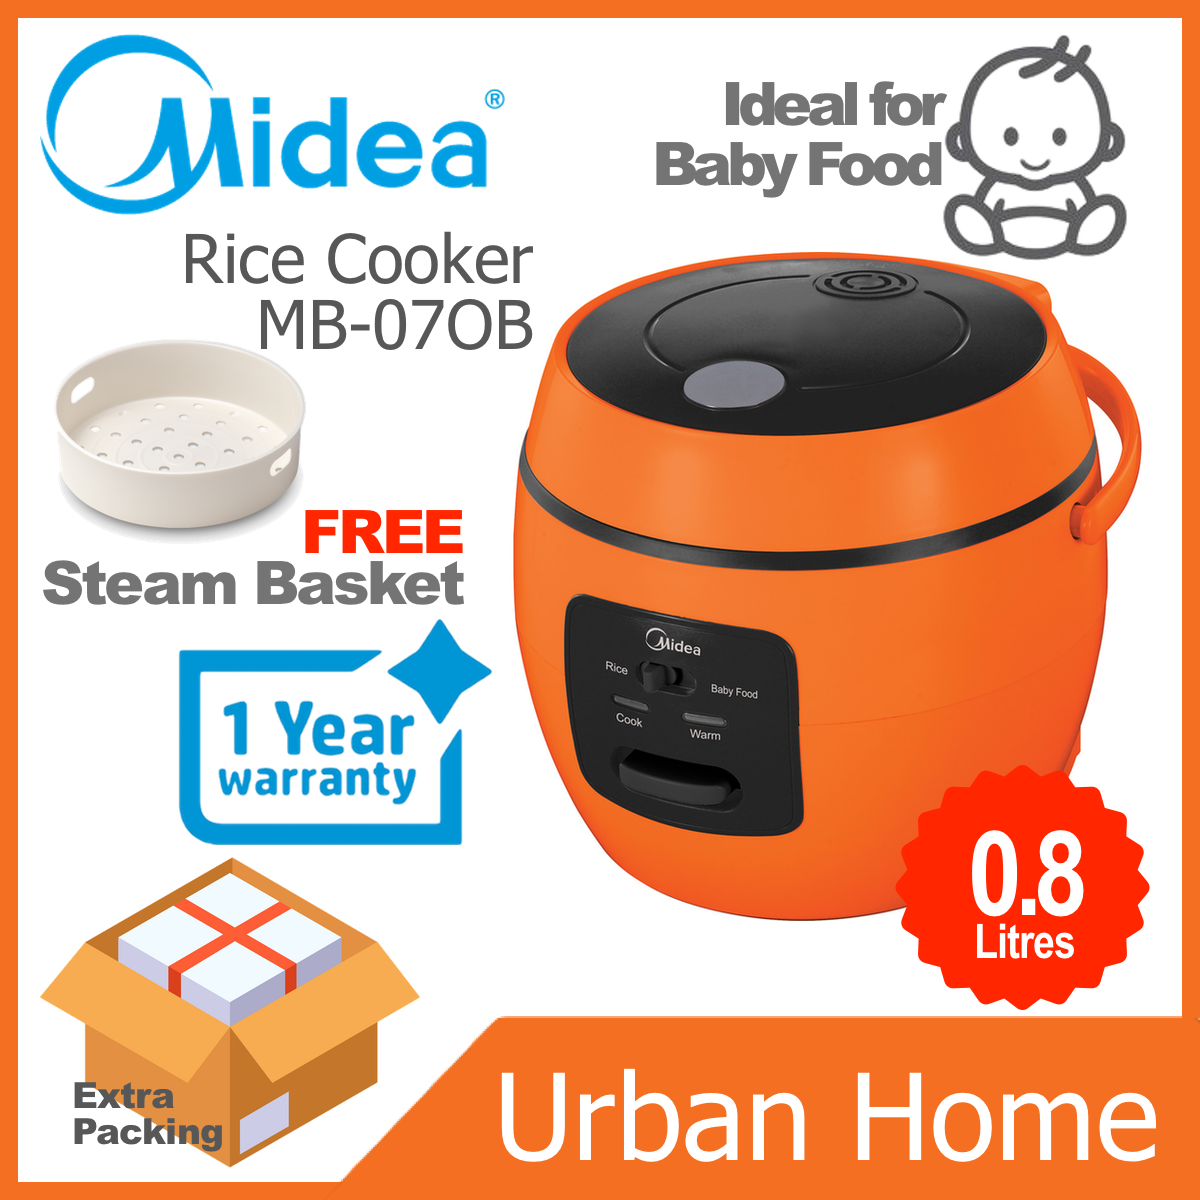 MIDEA 0.8L Mini Jar Rice Cooker Ideai for Baby Nasi Periuk Bayi (MB-07OB/MB07OB)